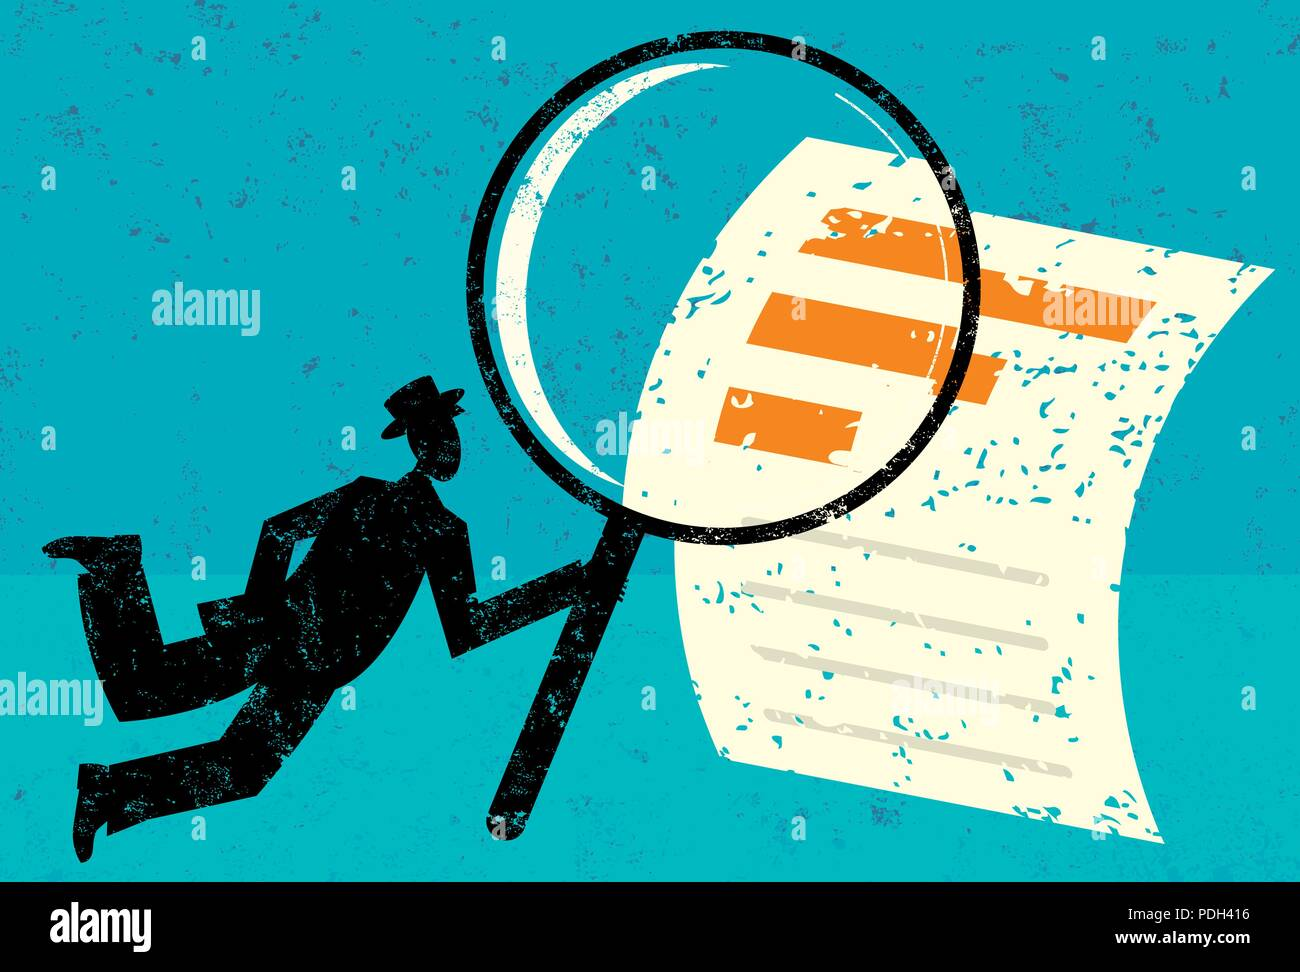 Examining Financial Data. A man looking through a magnifying glass at a financial document over an abstract background. - Stock Vector